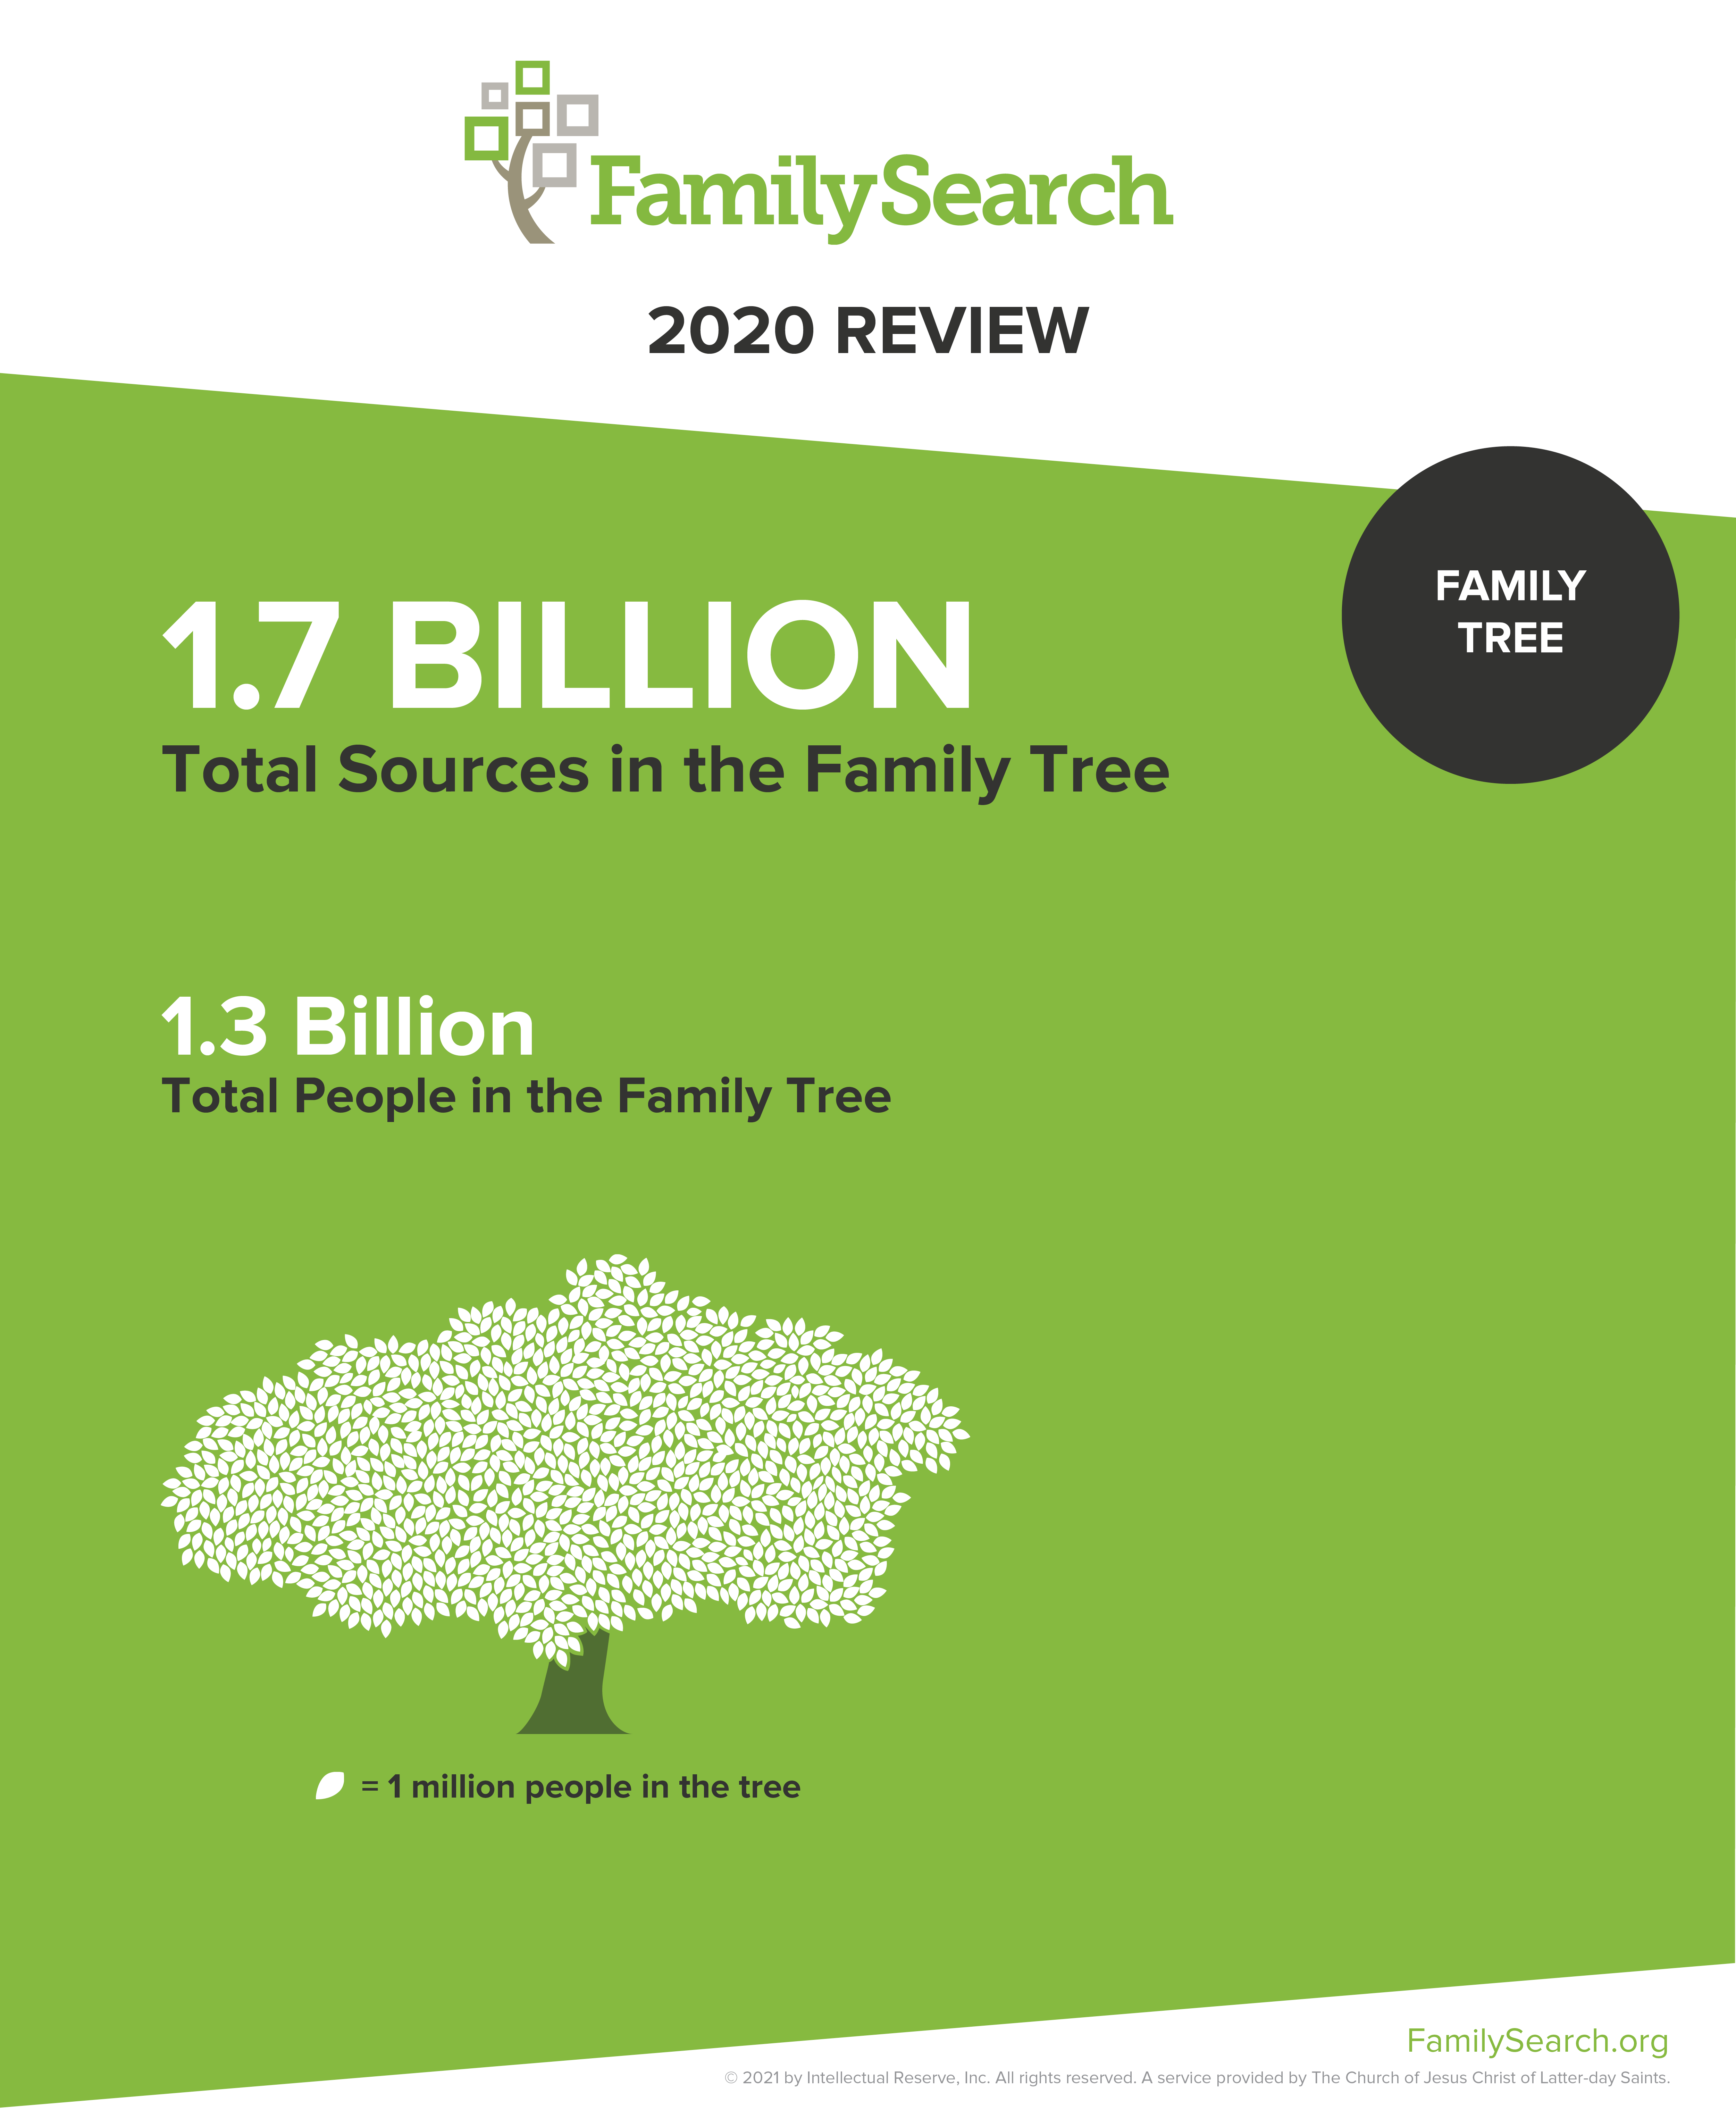 FamilySearch Family Tree 2020 Infographic